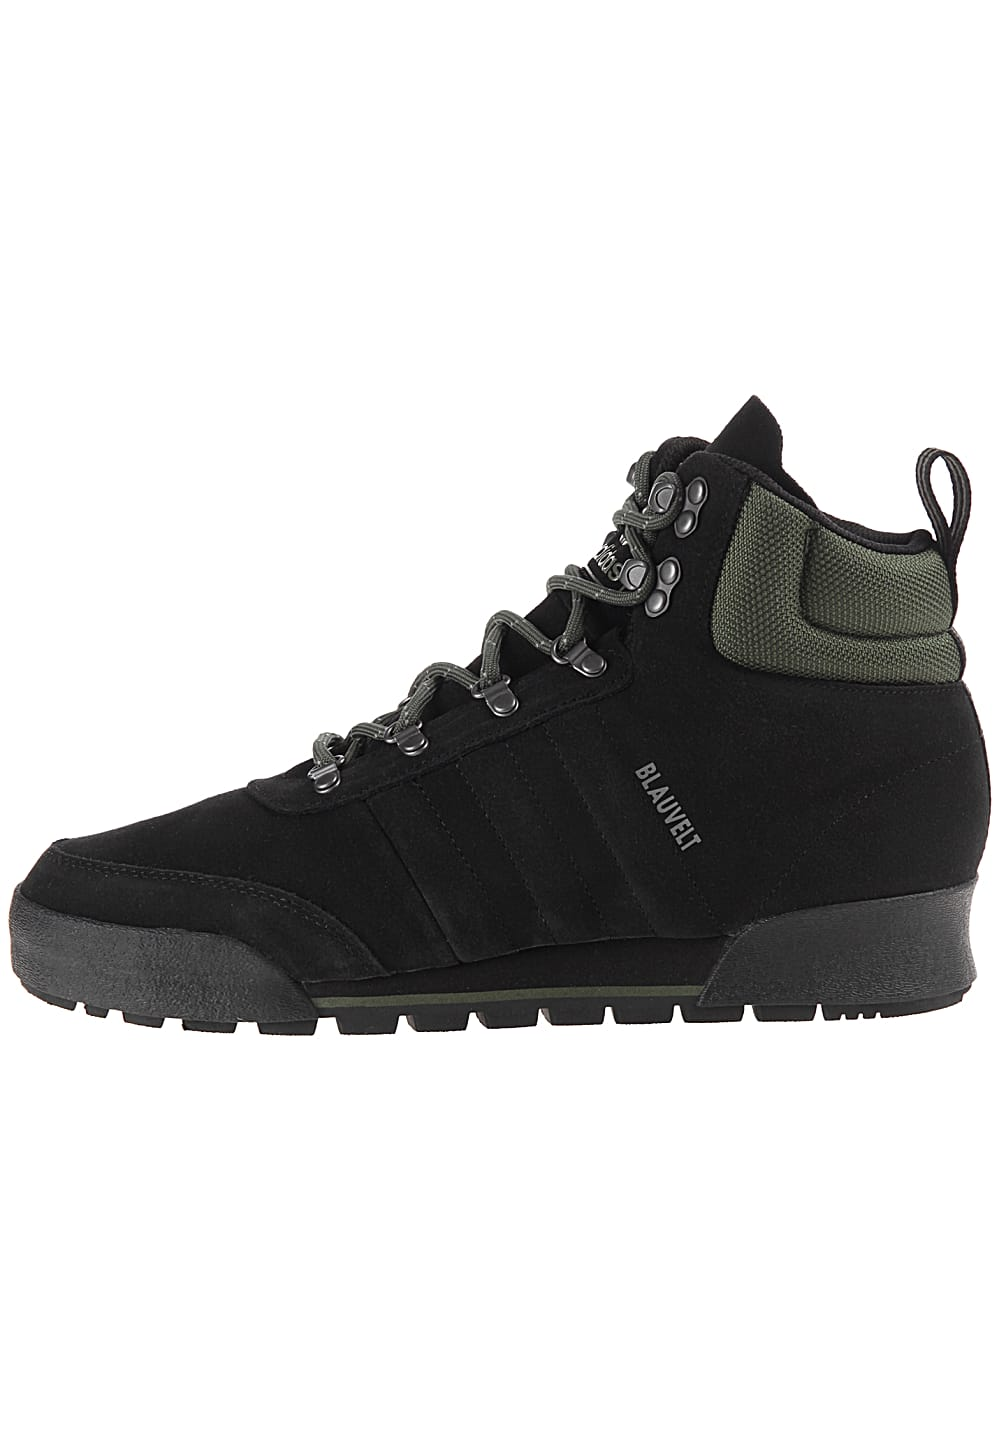 47ee896e6f0 Adidas Skateboarding Jake Boot 2.0 - Boots for Men - Black - Planet ...